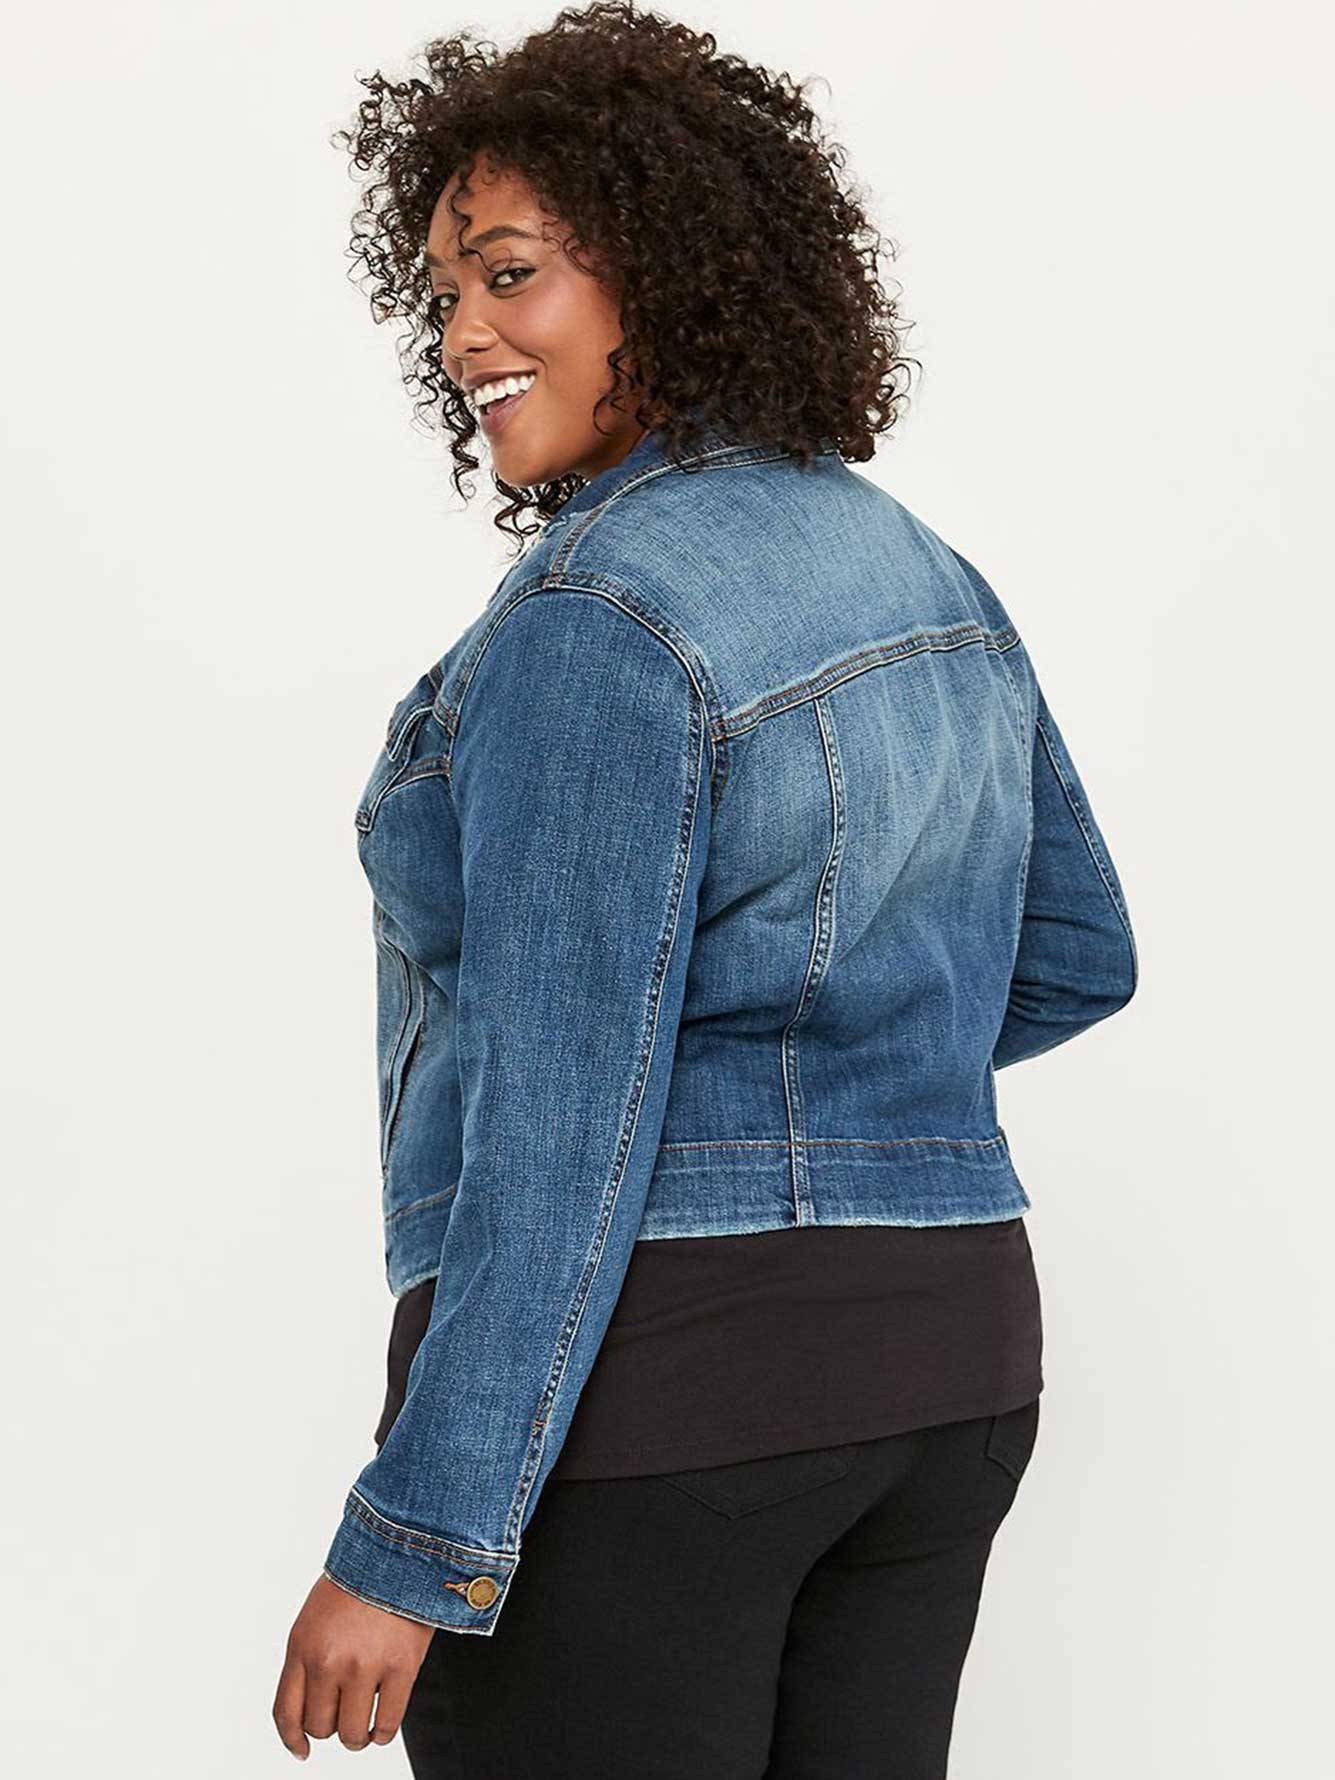 841cb00d4de2 Long Sleeve Denim Jacket - d C JEANS